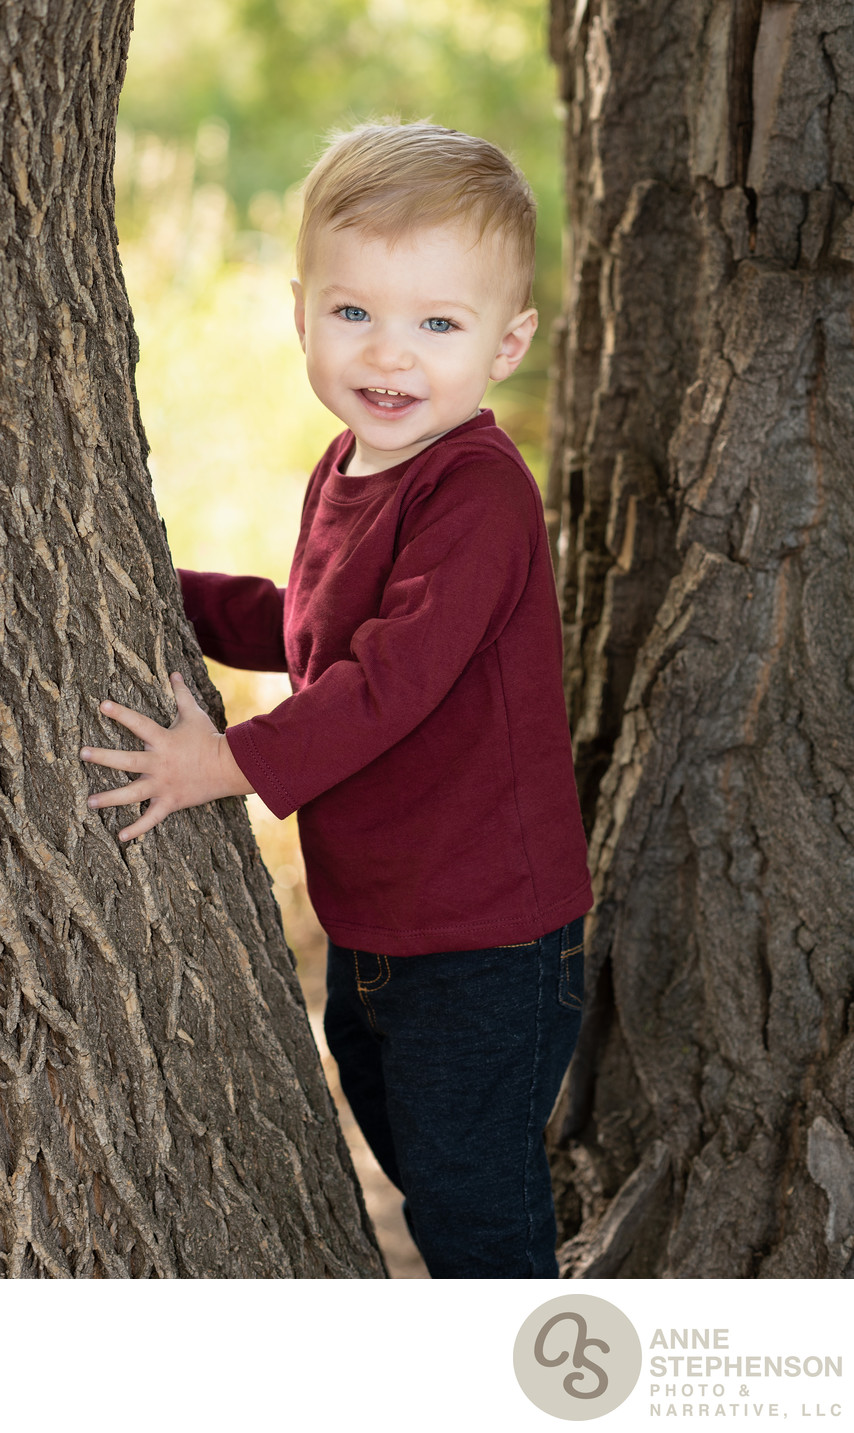 Candid Photo of Toddler Climbing Tree